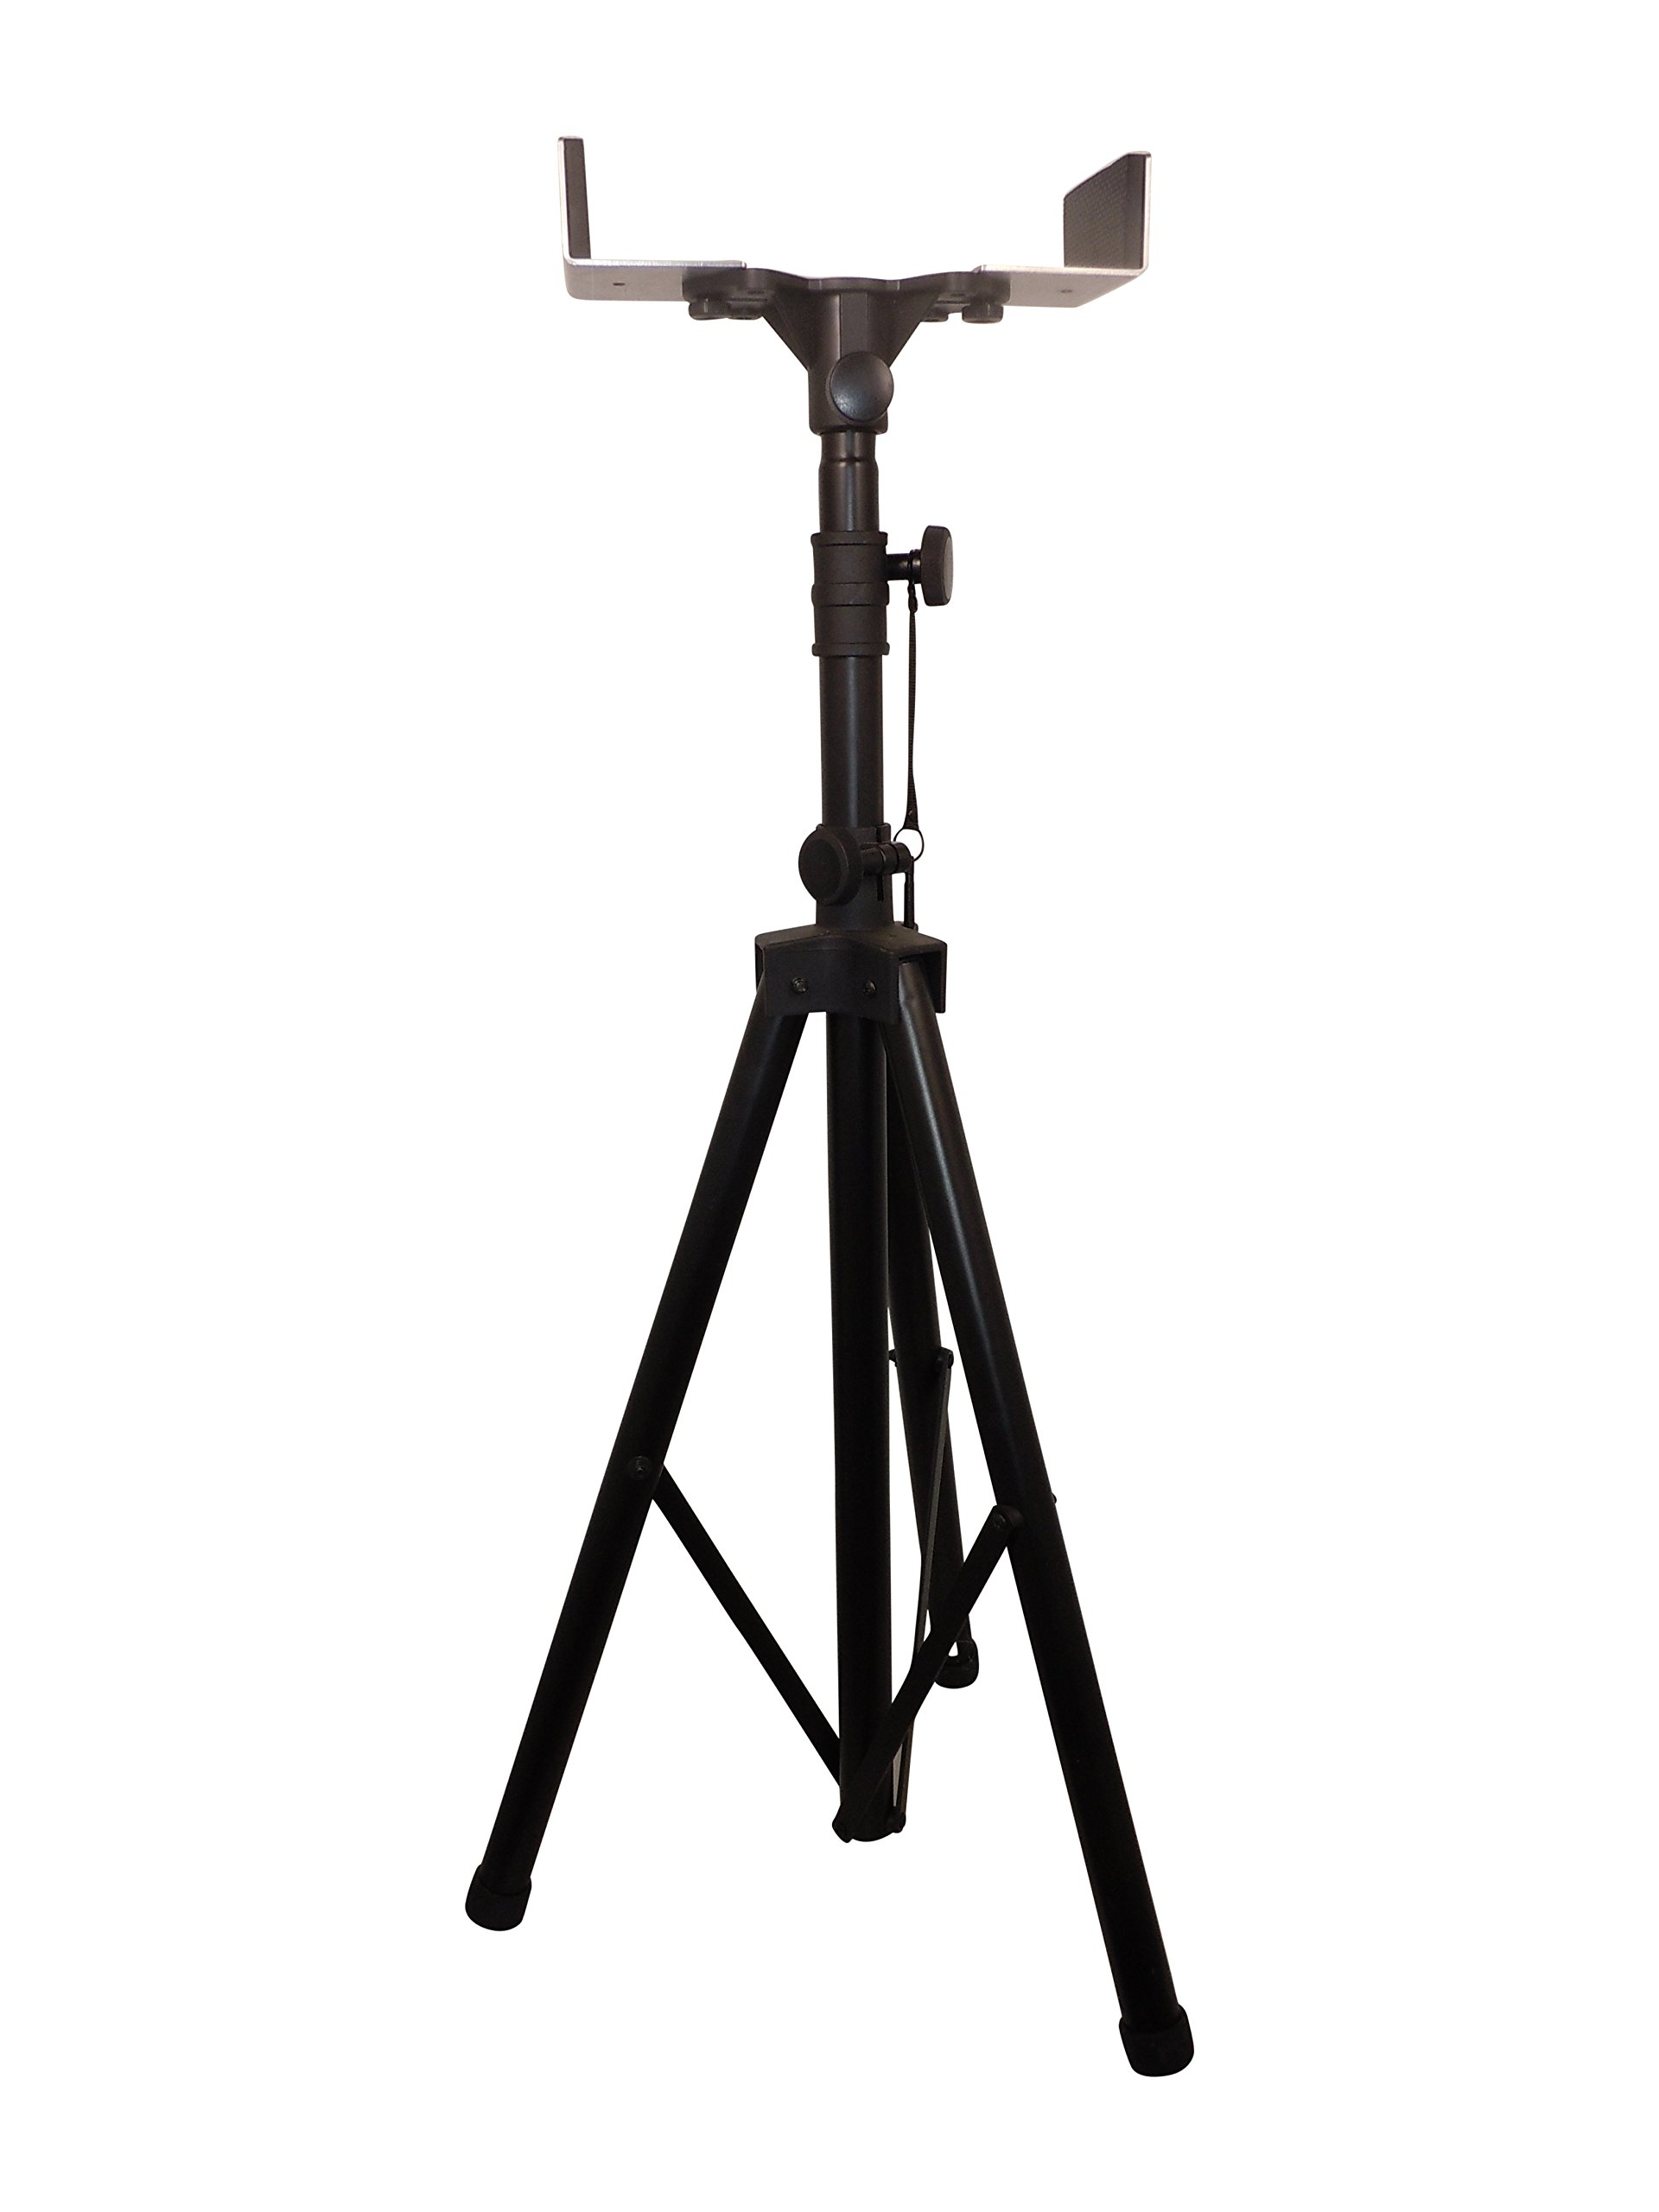 Heavy Duty Universal Tripod Adjustable Stand for Stage, Construction Lights, Workshops, Signage, by In360light